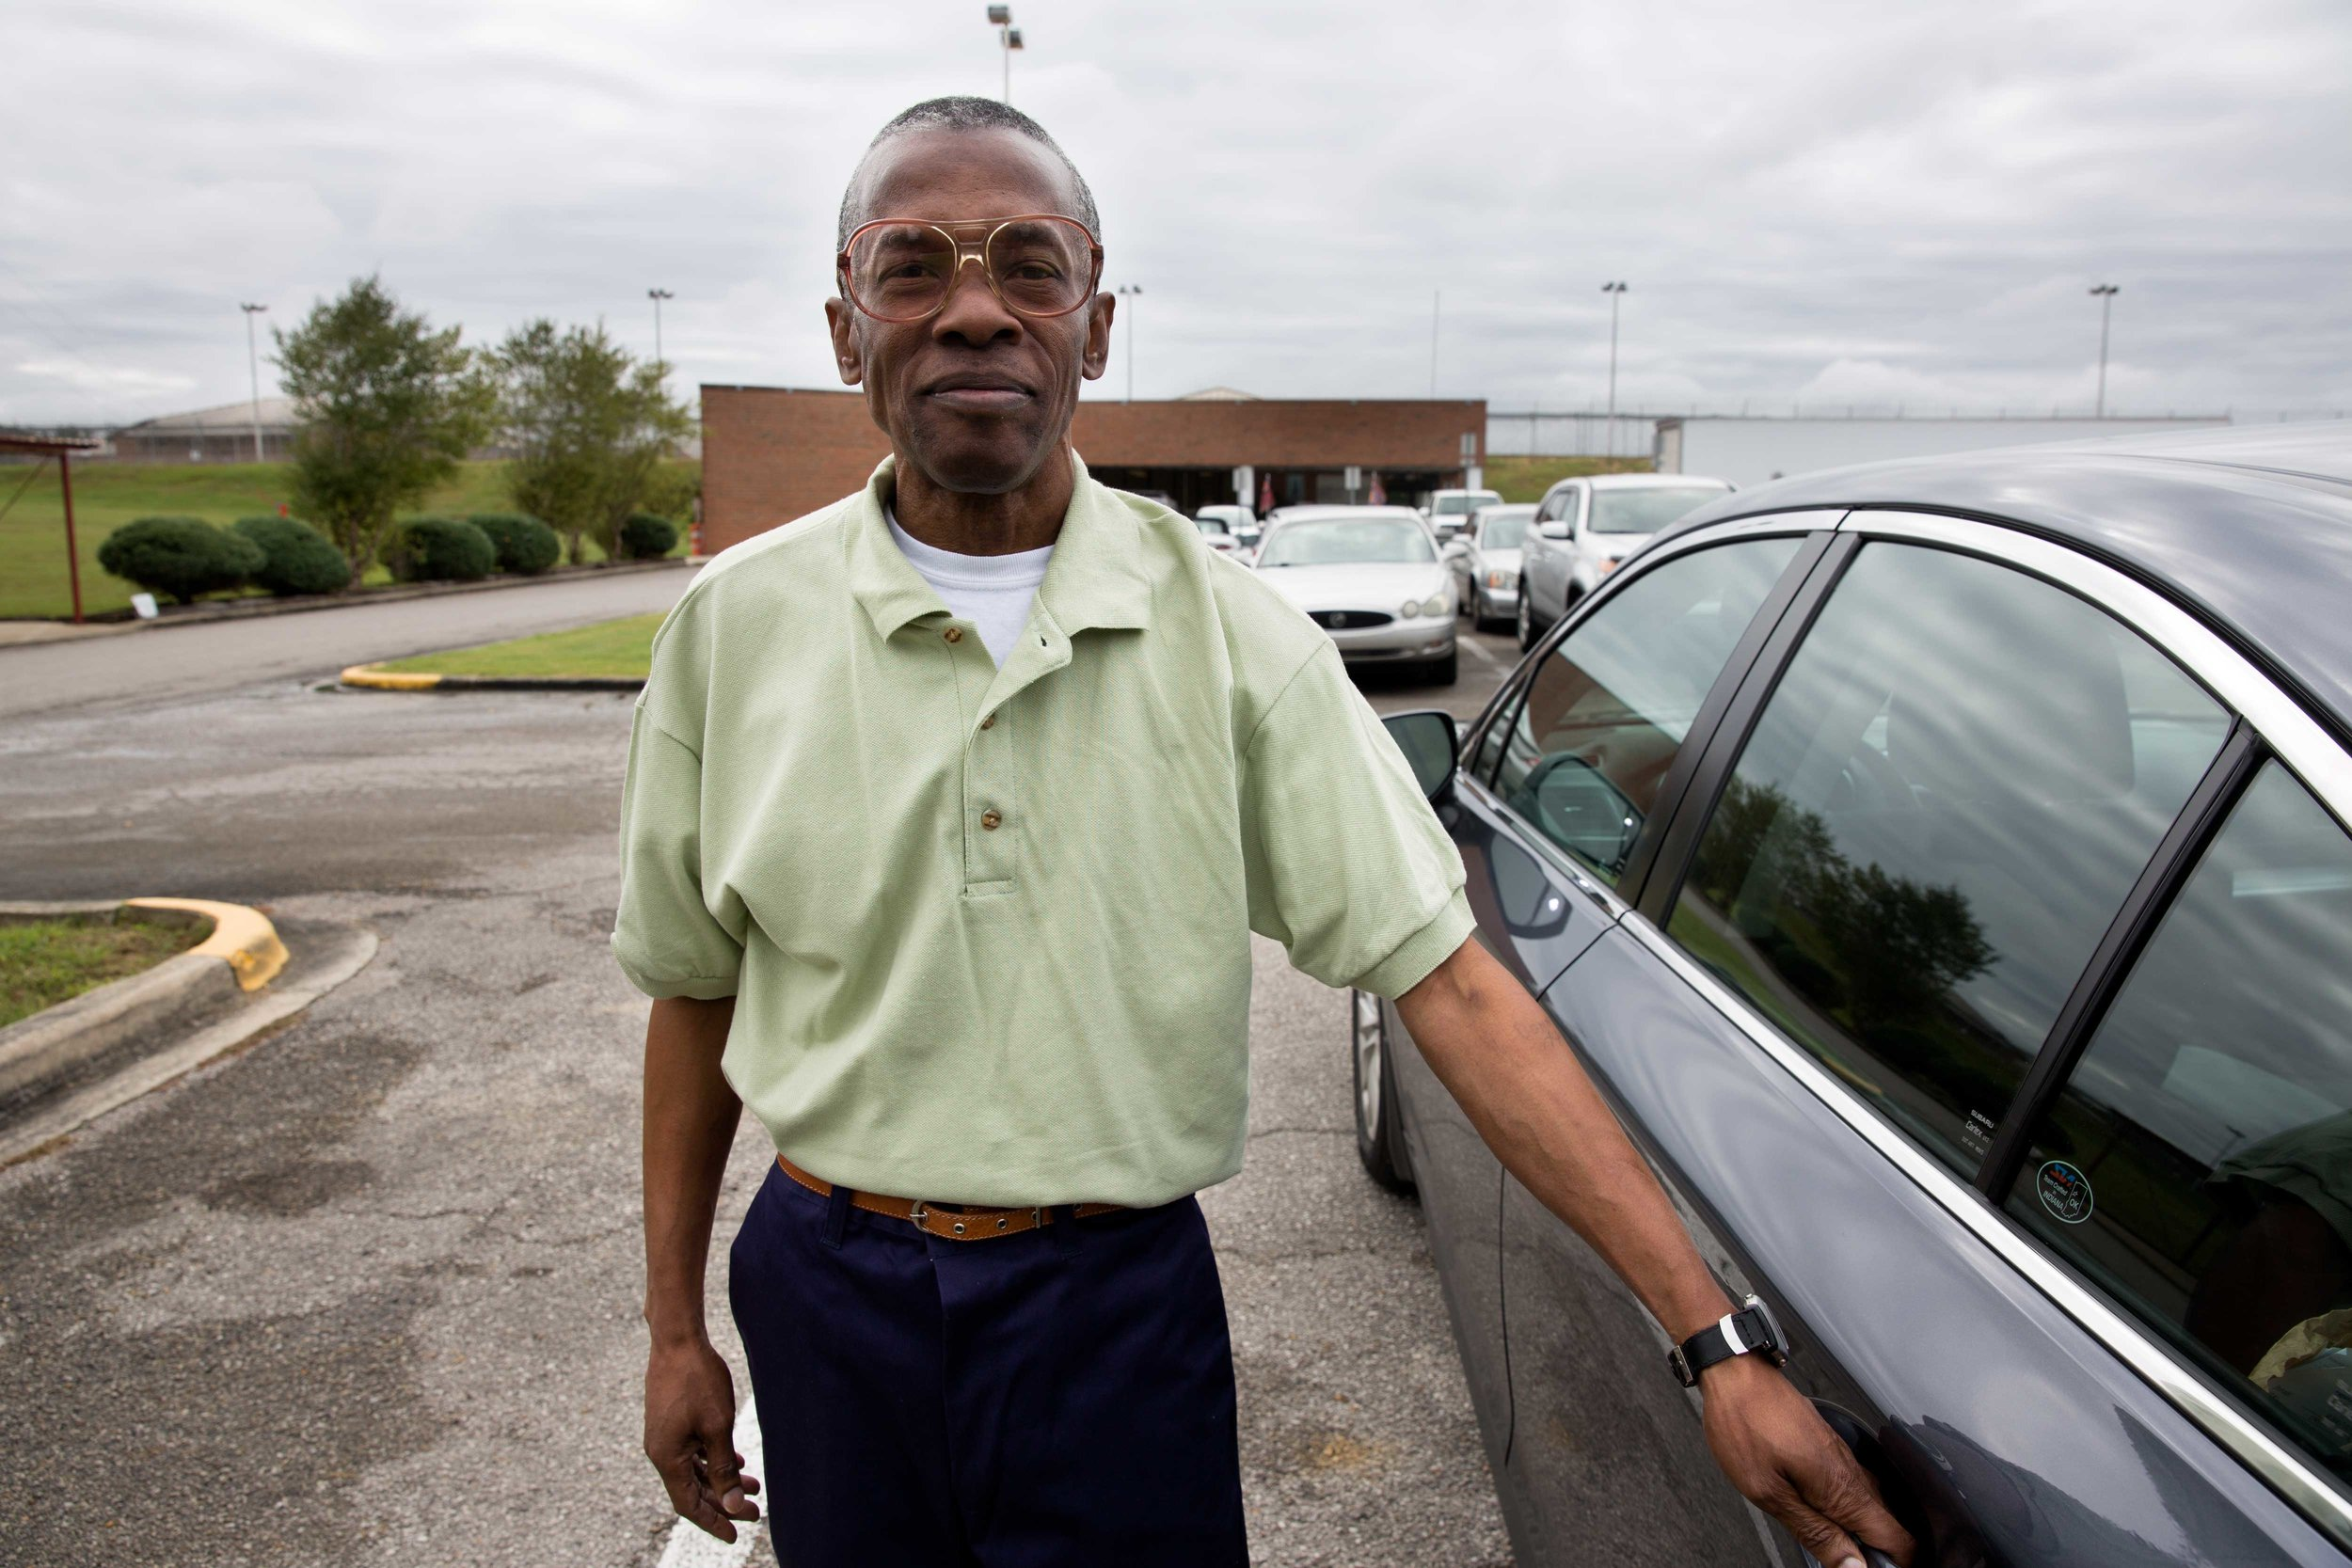 """Originally published in   Mother Jones Magazine     and     The Marshall Project   .   Ronald, minutes after his release from St. Clair Correctional Facility in Alabama. """"When I wake up,"""" he said, """"it will be strange to me, because I'm so used to waking up in that little small cell with just a toilet and bed for so long. I'm going to think I'm dreaming or something."""""""